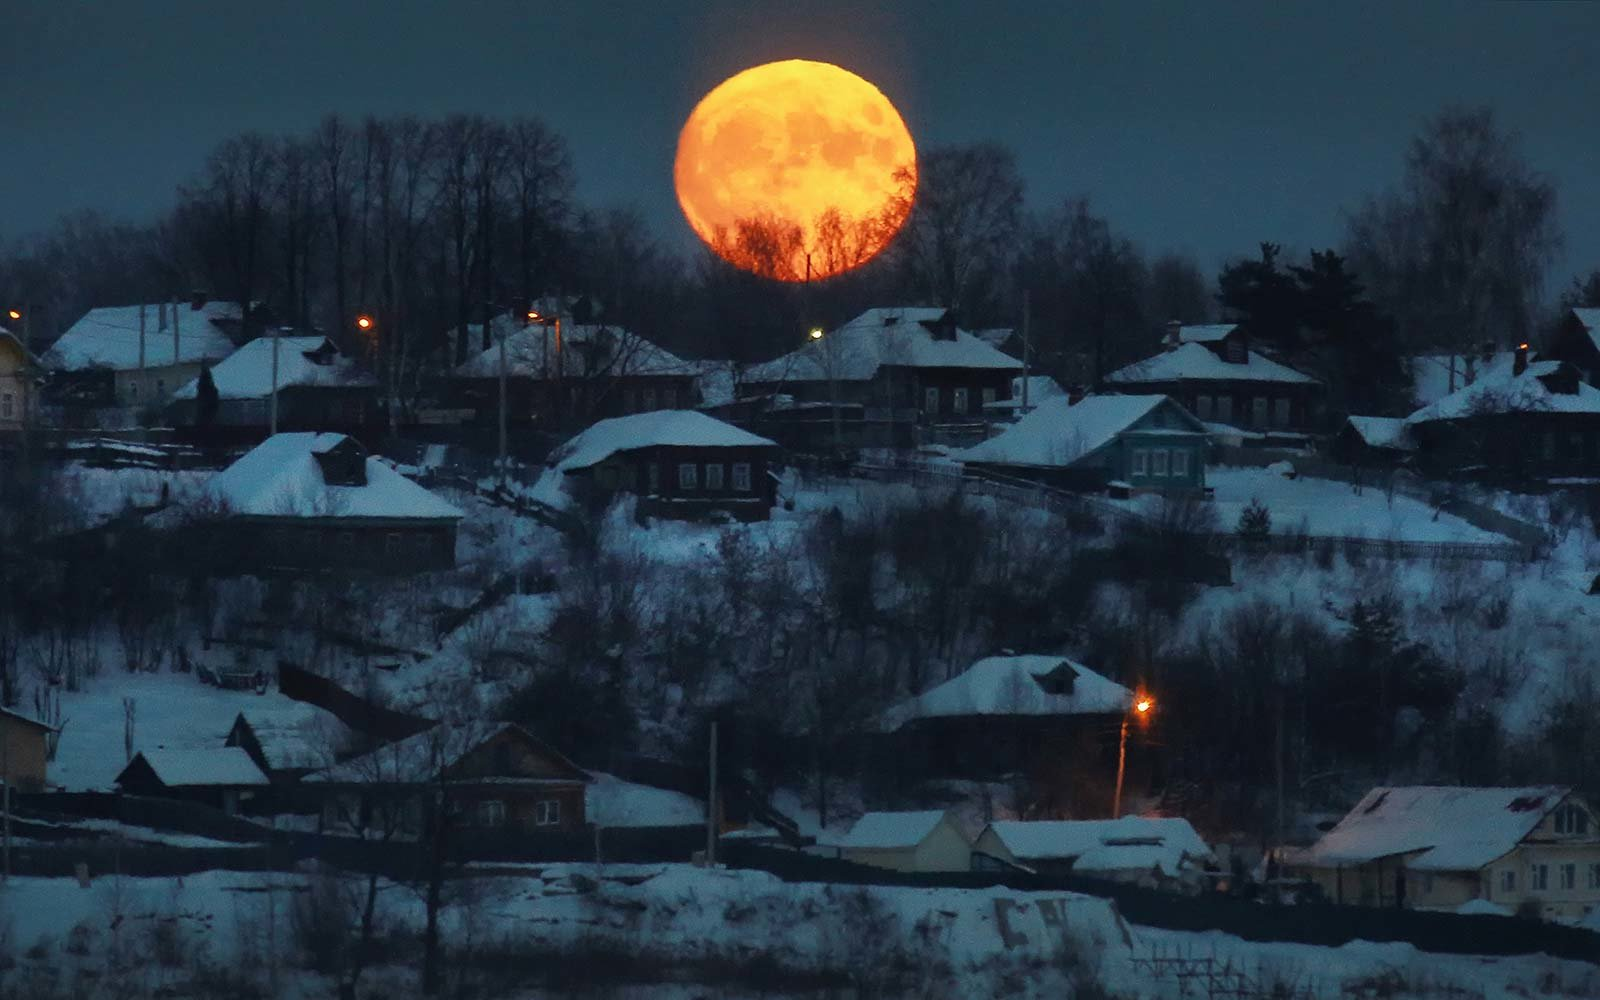 SUPER BLUE BLOOD MOON COMING---JANUARY 31ST